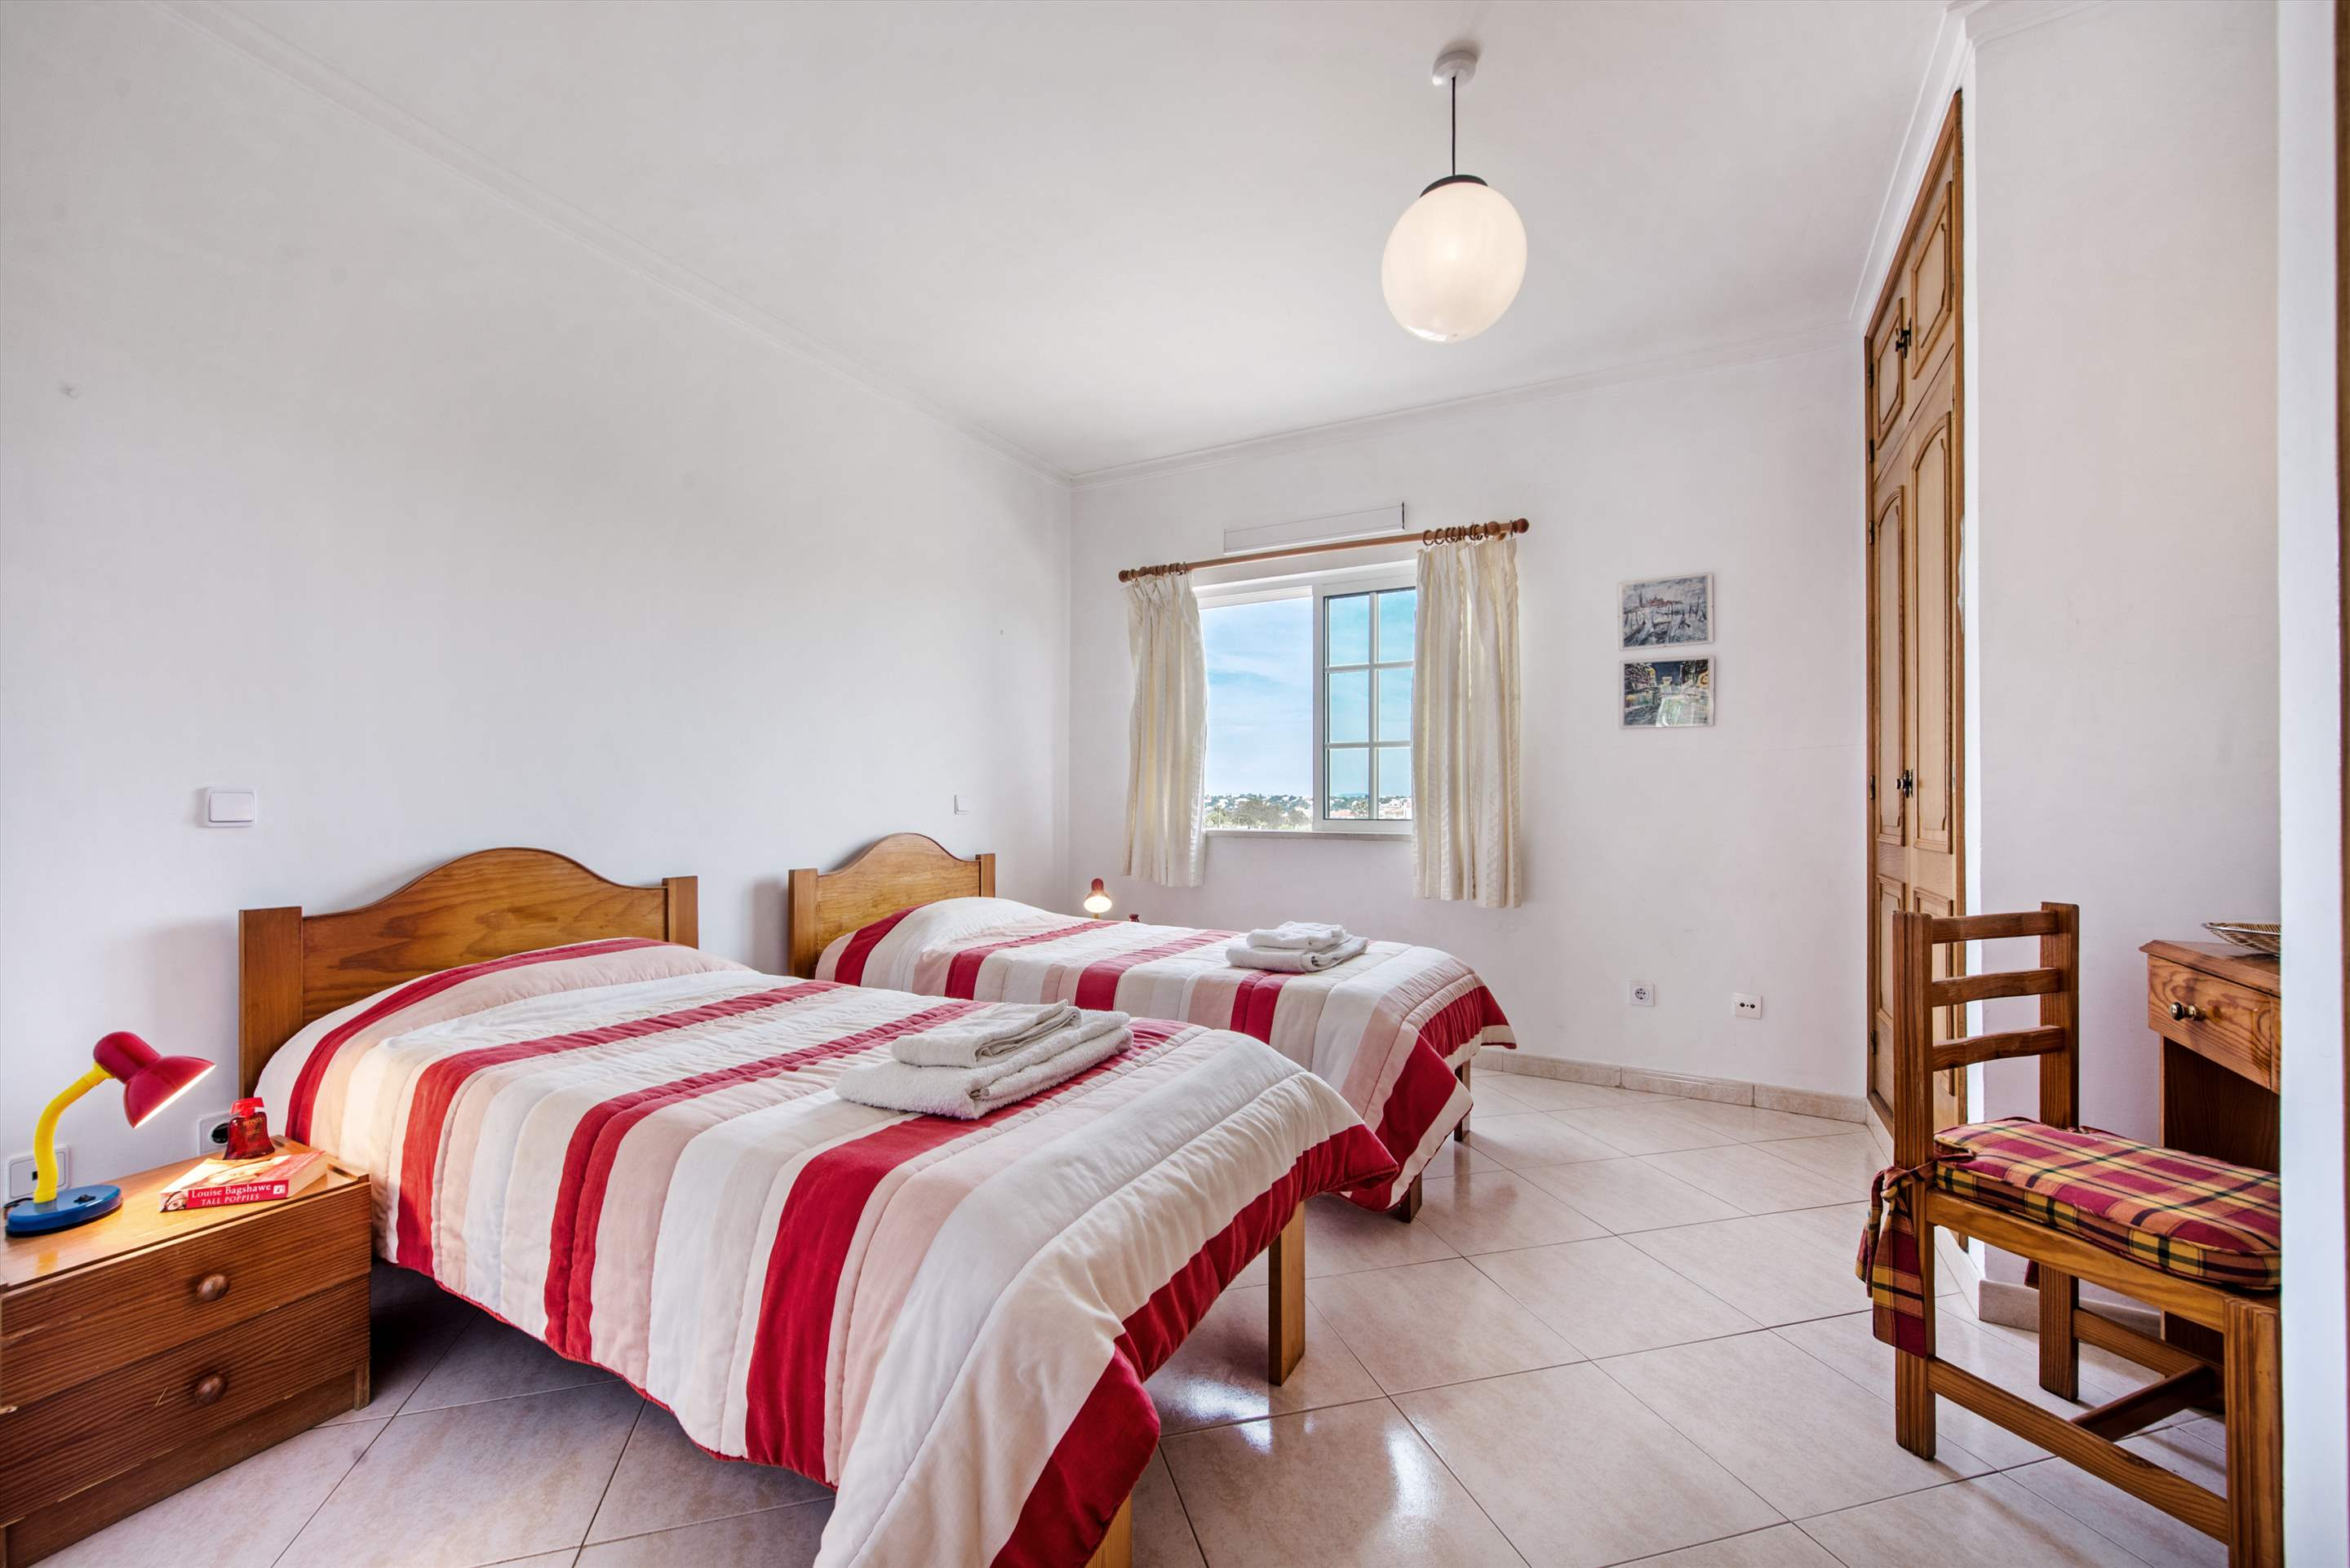 Apt O Monte, Up to 6 Persons, 3 bedroom apartment in Gale, Vale da Parra and Guia, Algarve Photo #21